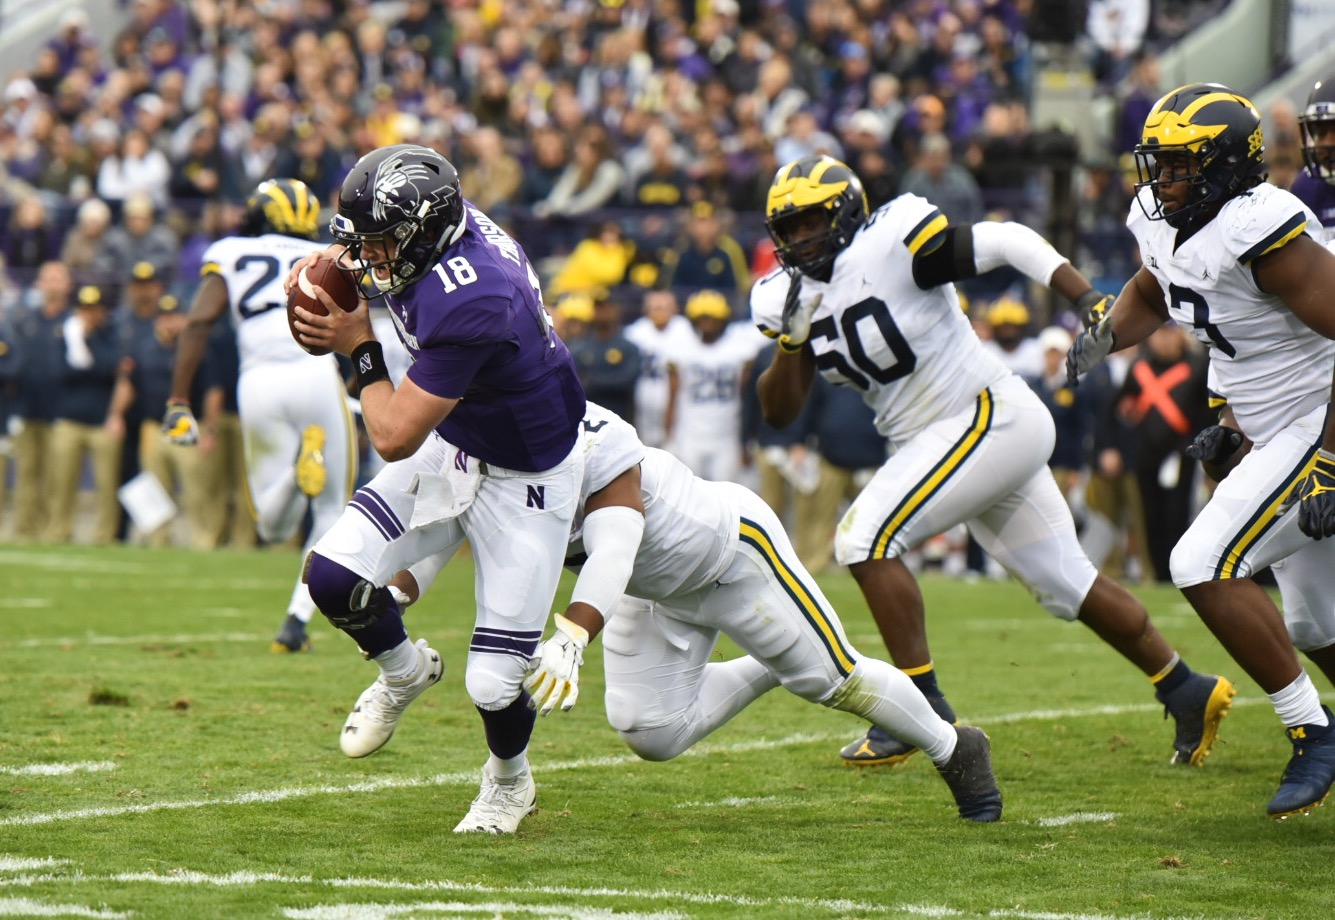 Clayton Thorson tries in vain to escape a tackler. The Wildcats blew a 17-0 lead in Saturday's 20-17 loss to Michigan.